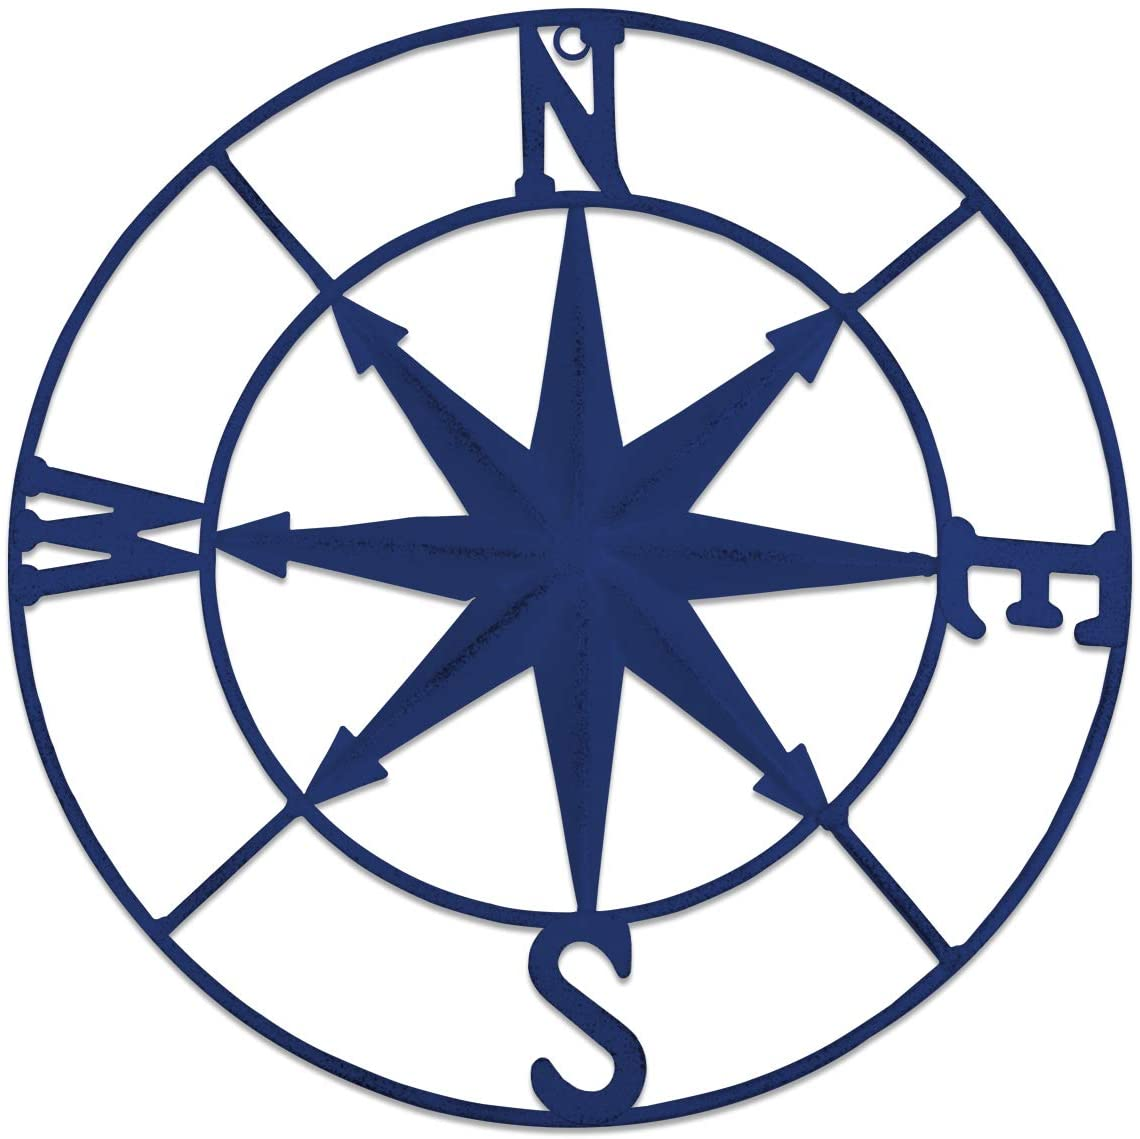 YiYa Distressed Metal Compass Mural Decoration Nautical Decoration Bedroom Living Room Garden Office Wall Hanging Beach Theme Home Decoration (Blue)